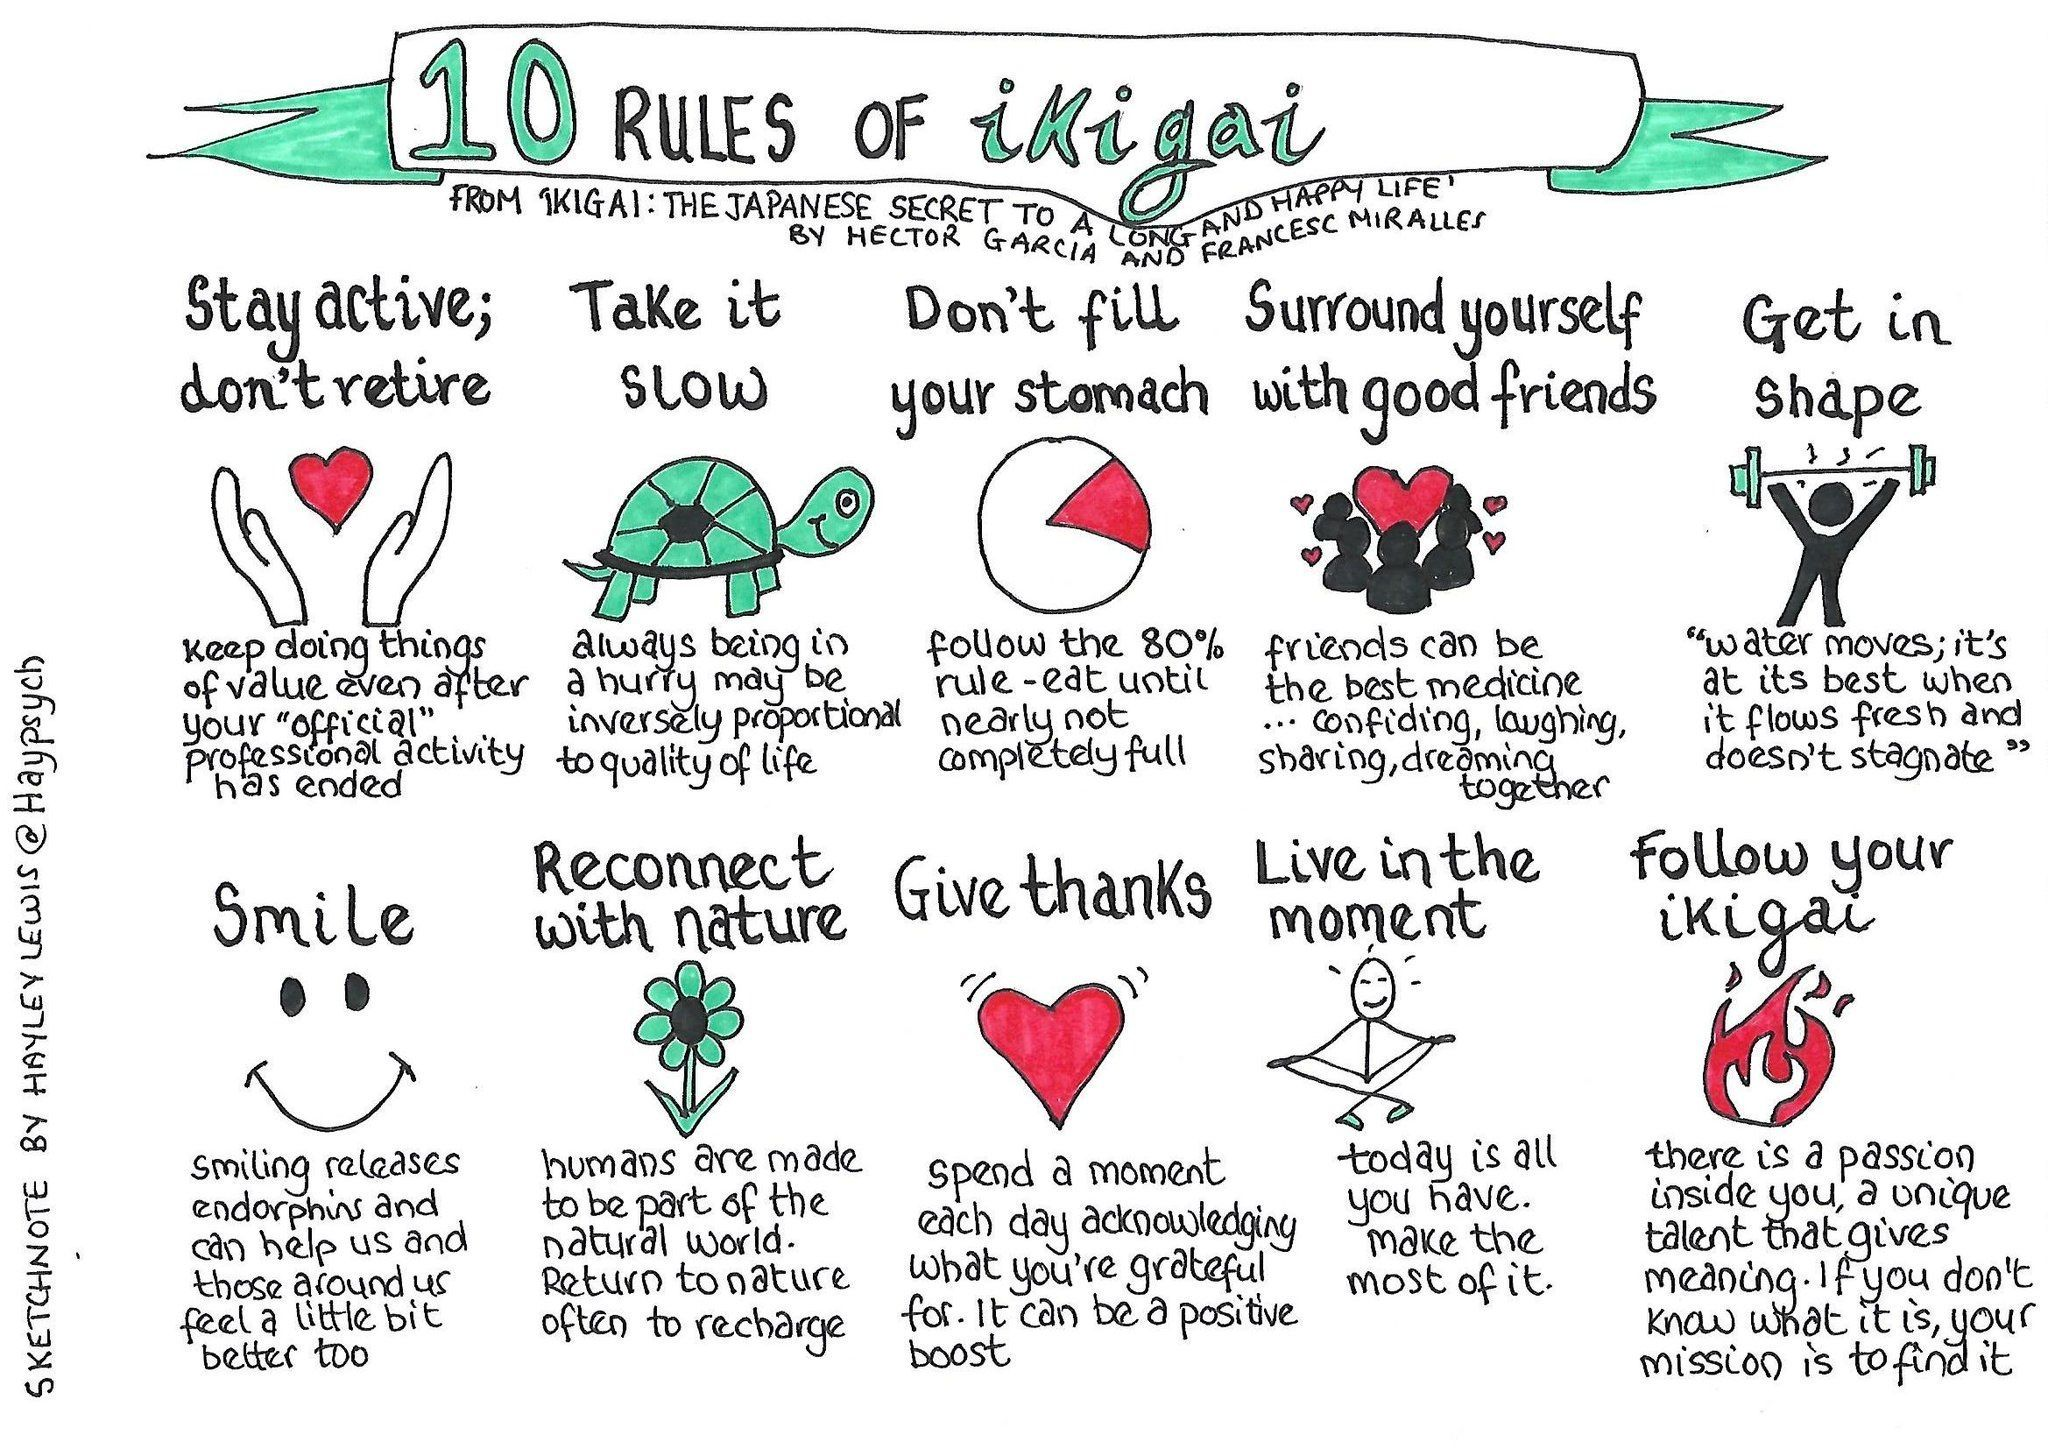 Your #ikigai may change over time, but having a #purpose is key. Such a brilliant sketchnote by Francesc Miralles and Hector Garcia. We can all use a reminder every now & again. Cc: @helene_wpli @psb_dc @enricomolinari @kkruse #futureofwork #lifelonglearning #Growthmindset https://t.co/bdQTl9ad9I